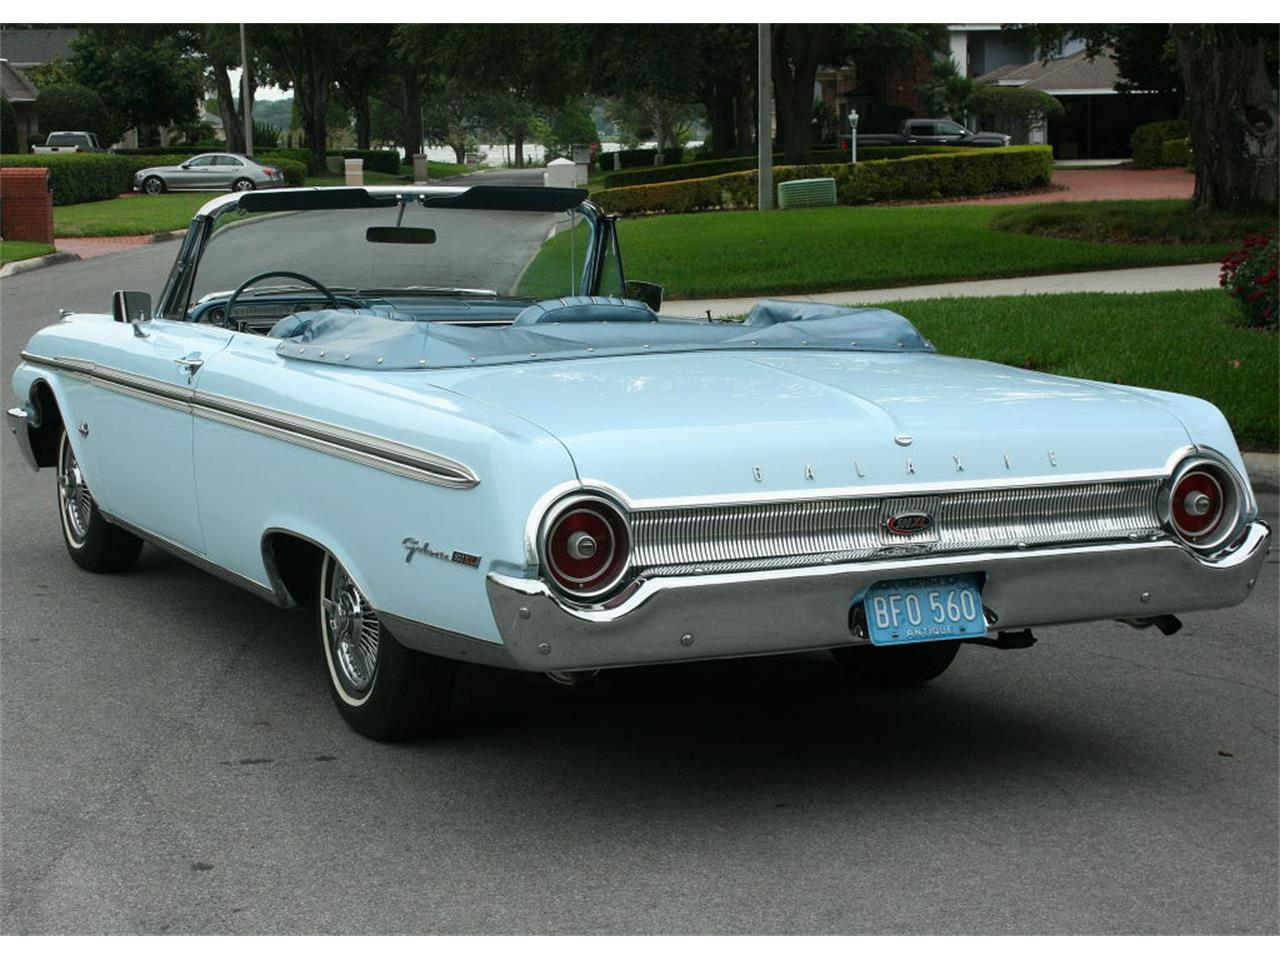 Large Picture of 1962 Ford Galaxie - $26,500.00 Offered by MJC Classic Cars - L6EK